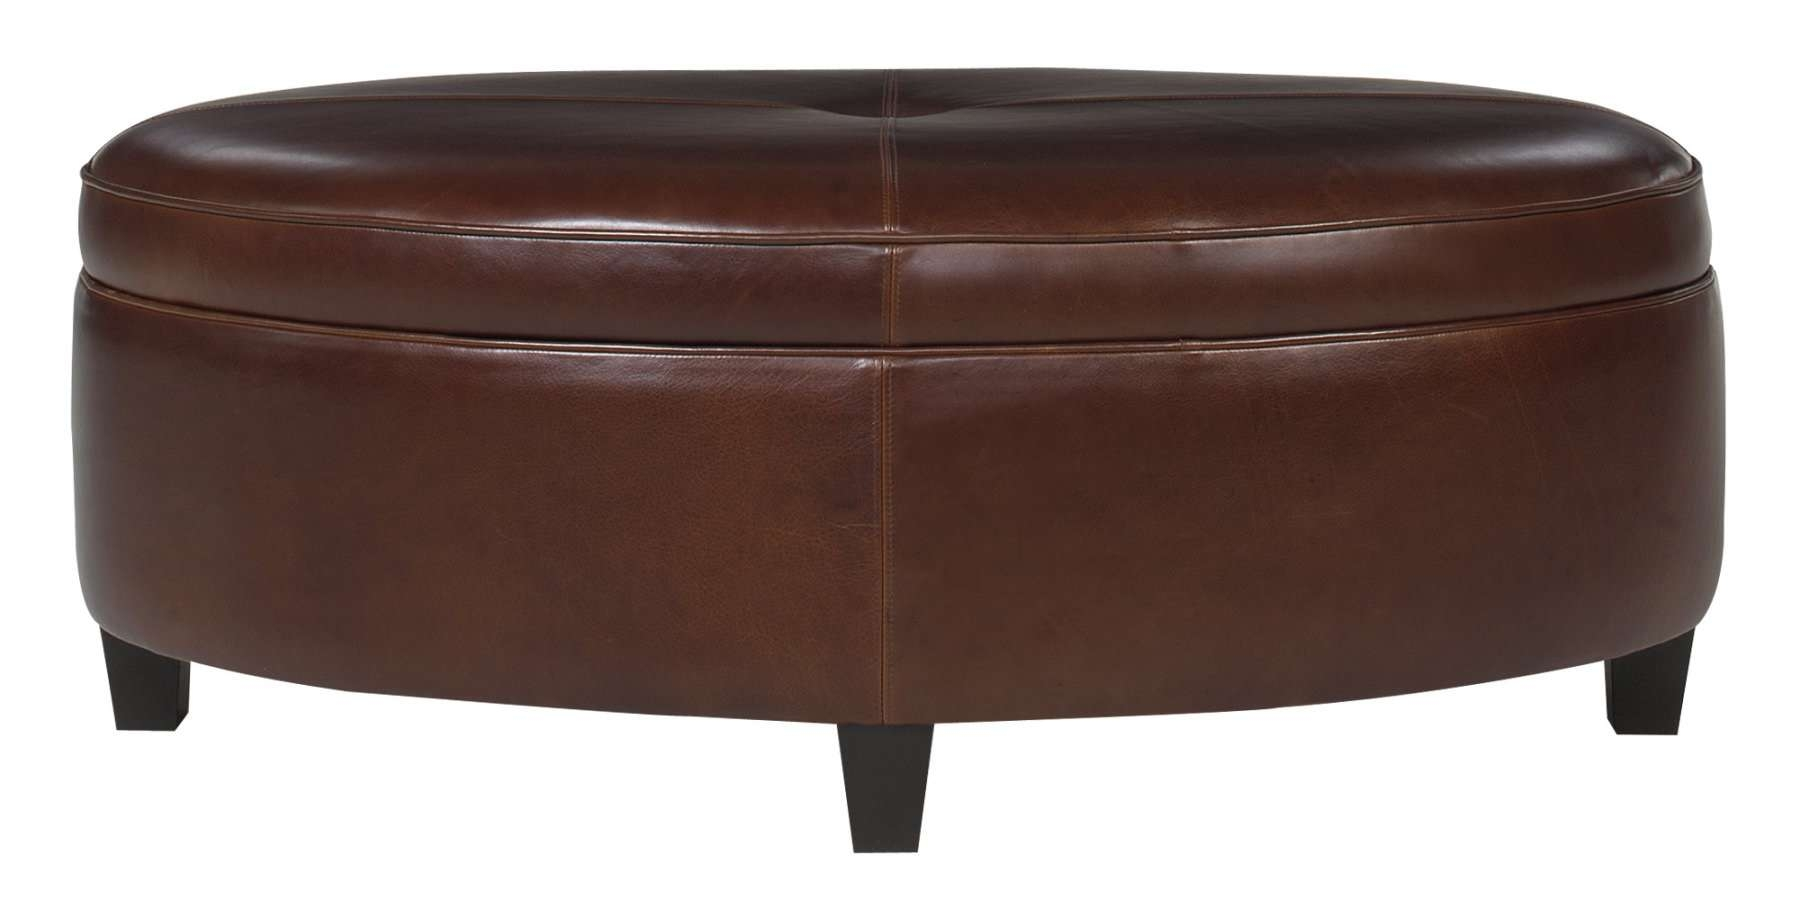 Popular Brown Leather Ottoman Coffee Tables With Storages Pertaining To Beautiful Leather Ottoman Coffee Table Furniture Coffee Table (View 17 of 20)